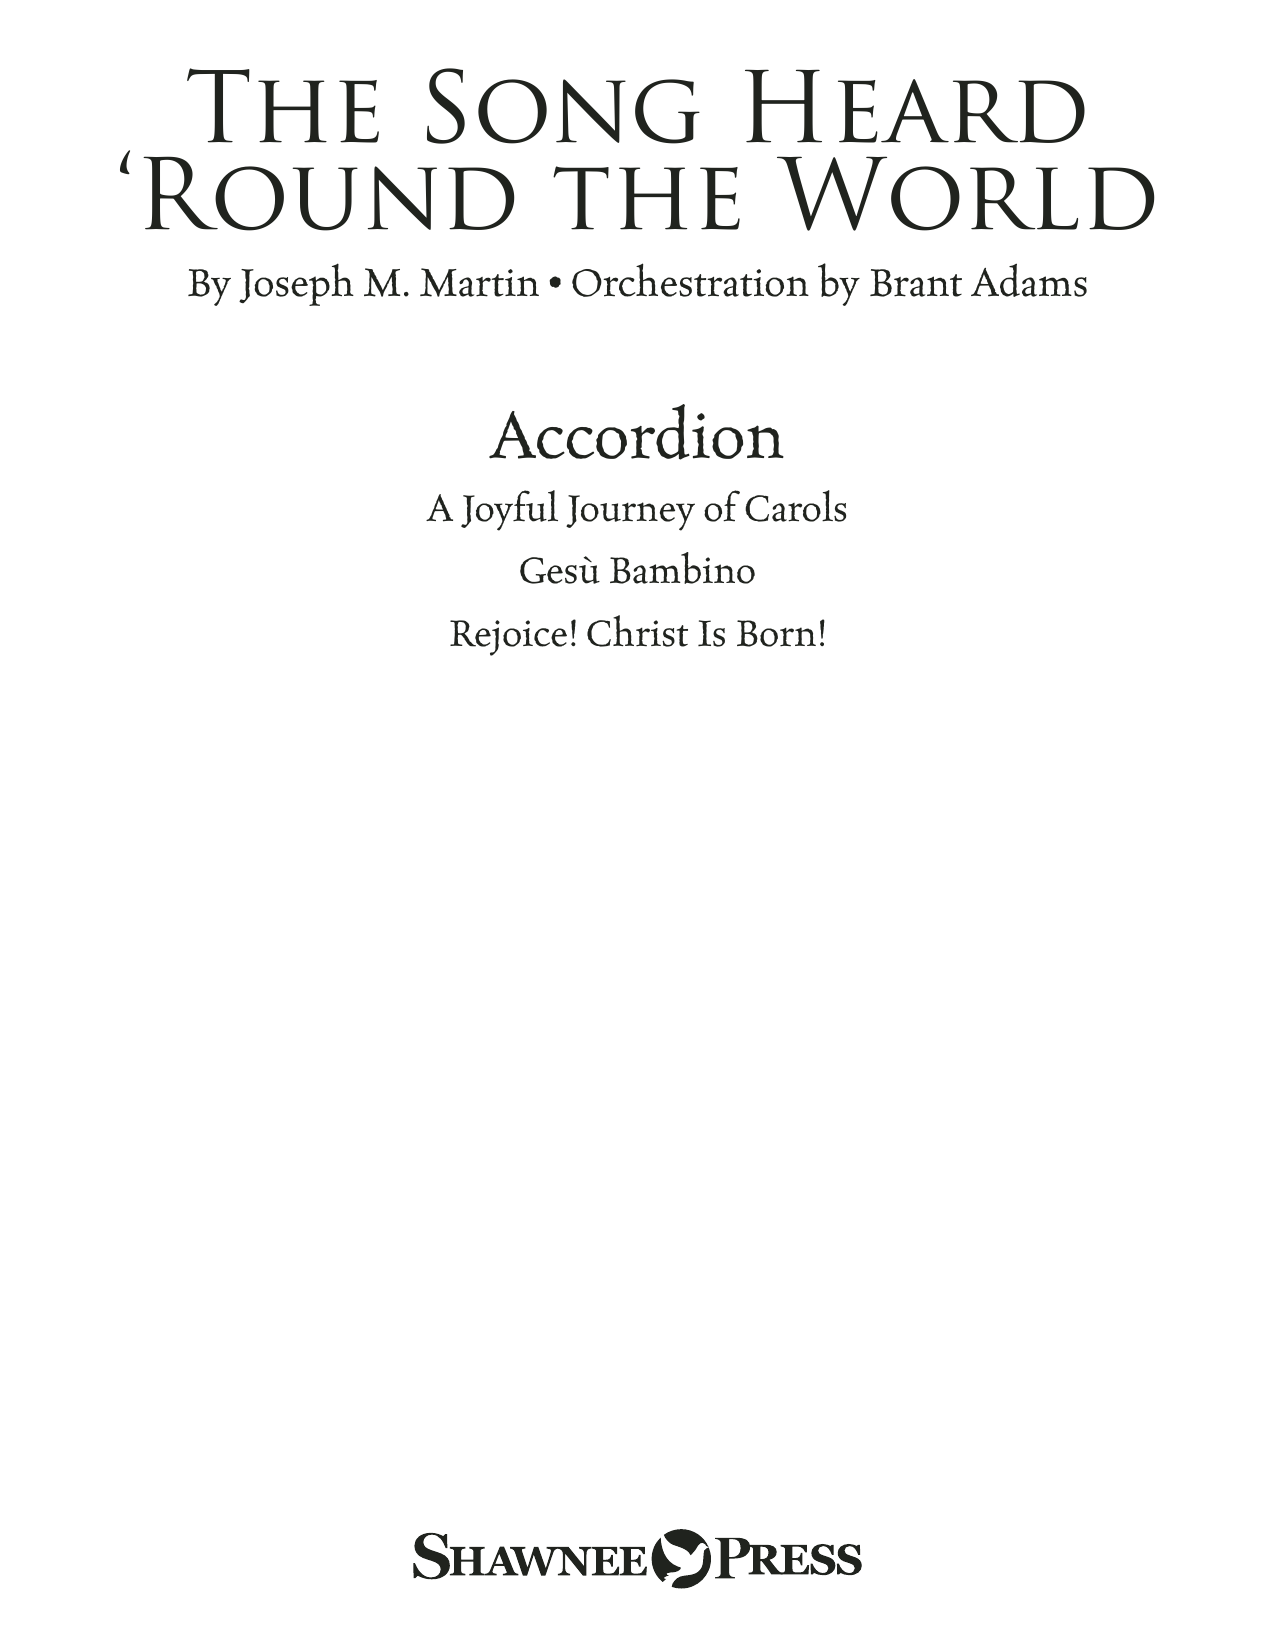 The Song Heard 'Round the World - Accordion Sheet Music